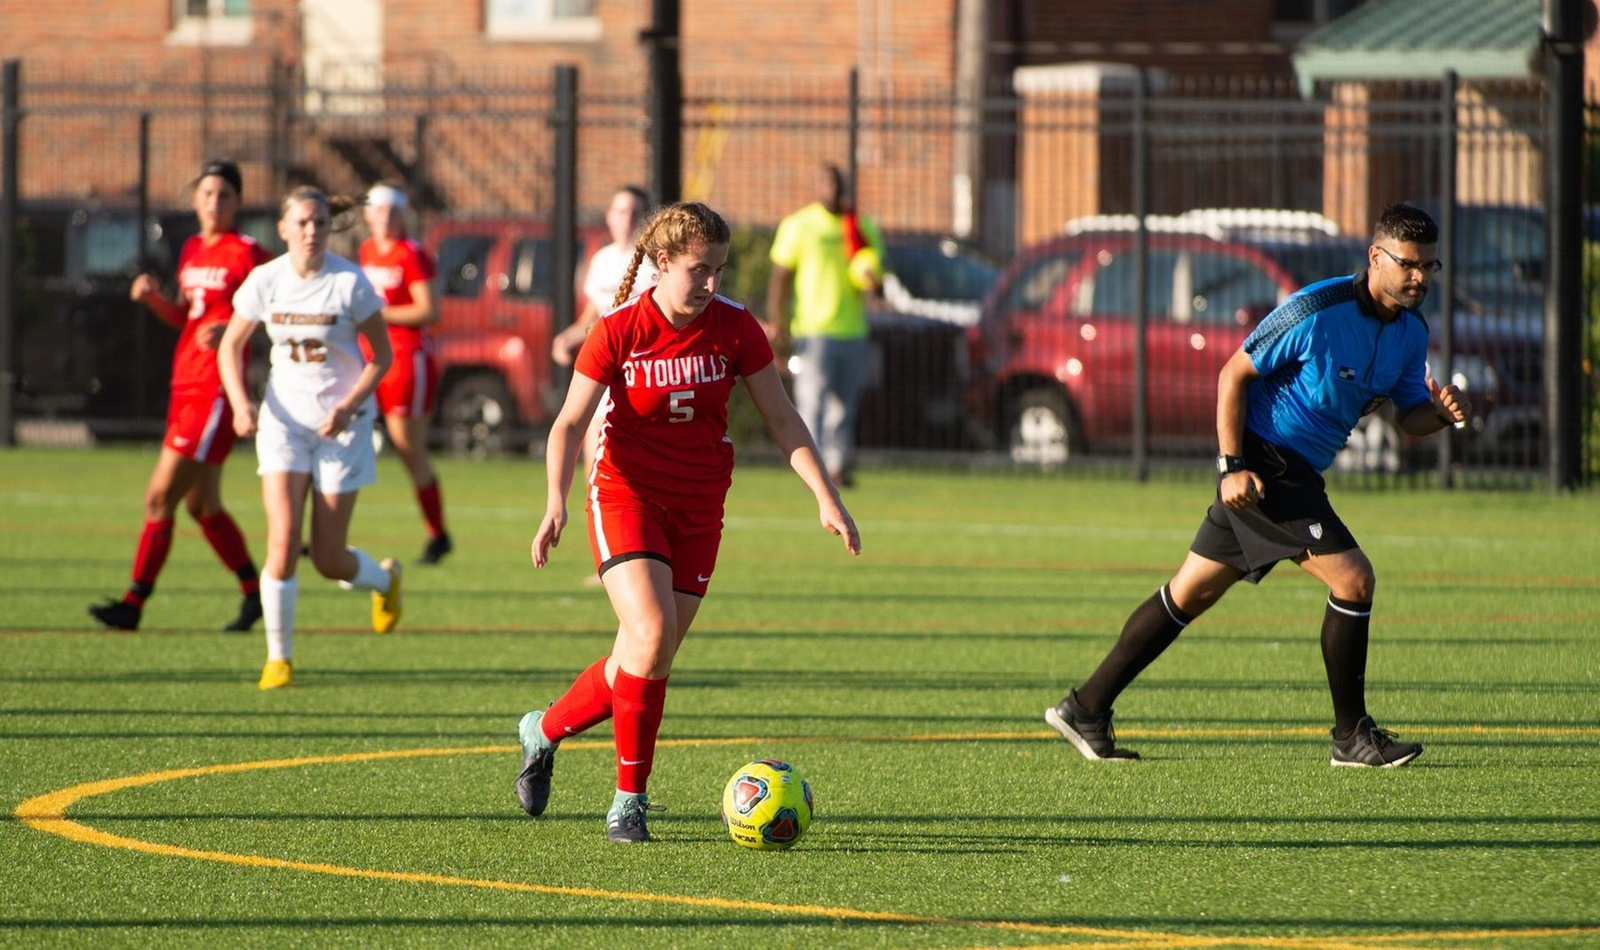 Isabella Lucania (above) scored her first career goal against the Bengals on Tuesday